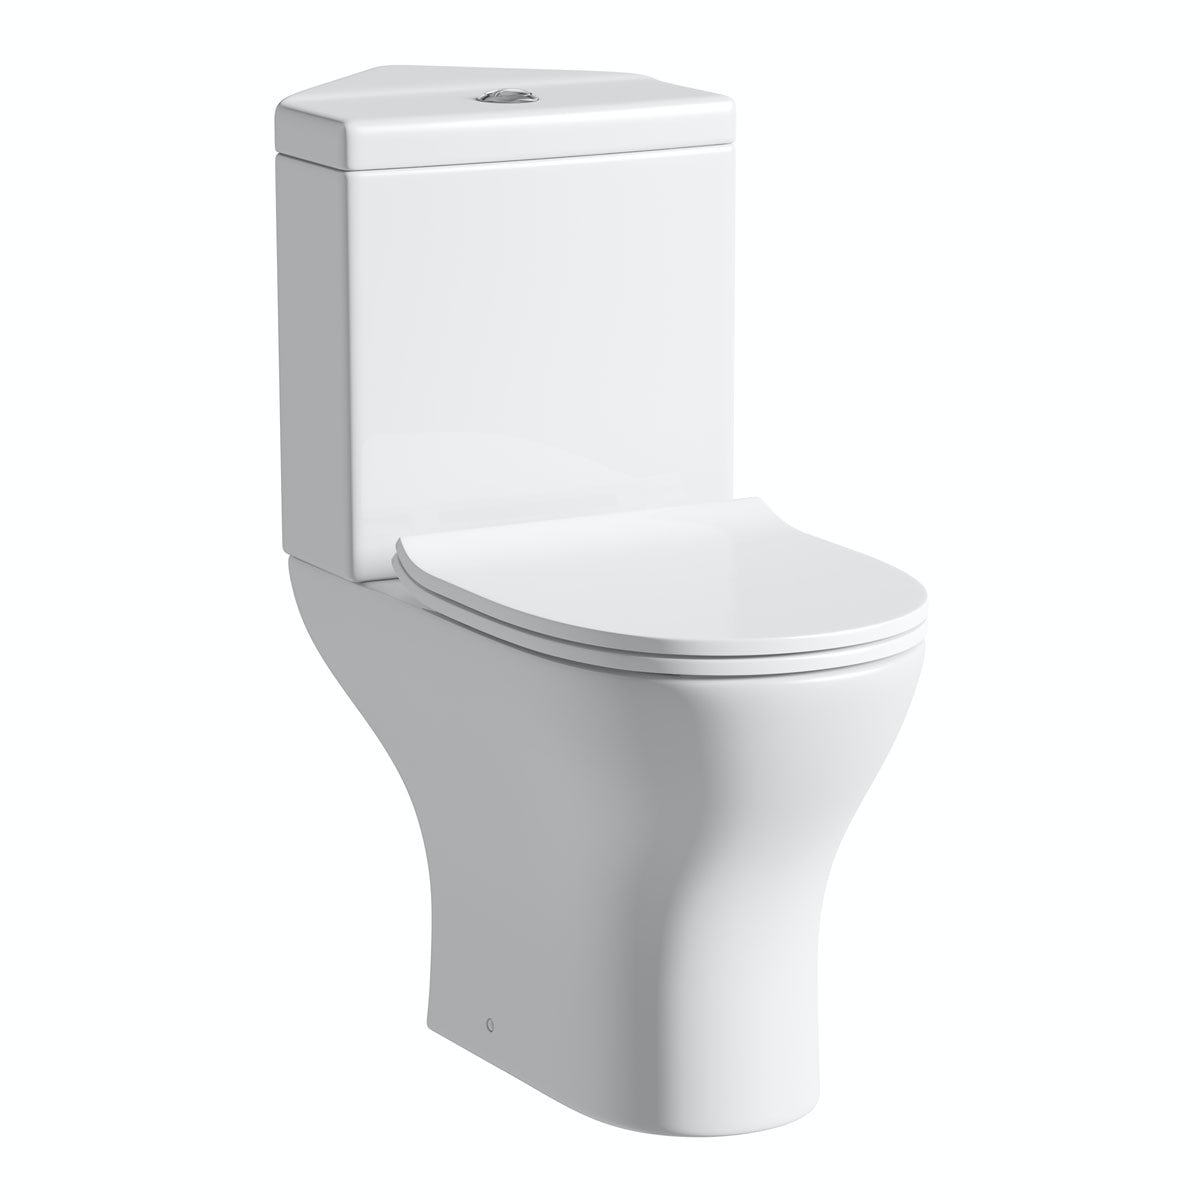 round toilet seat dimensions. Orchard Derwent round compact corner close coupled toilet with slimline  soft seat